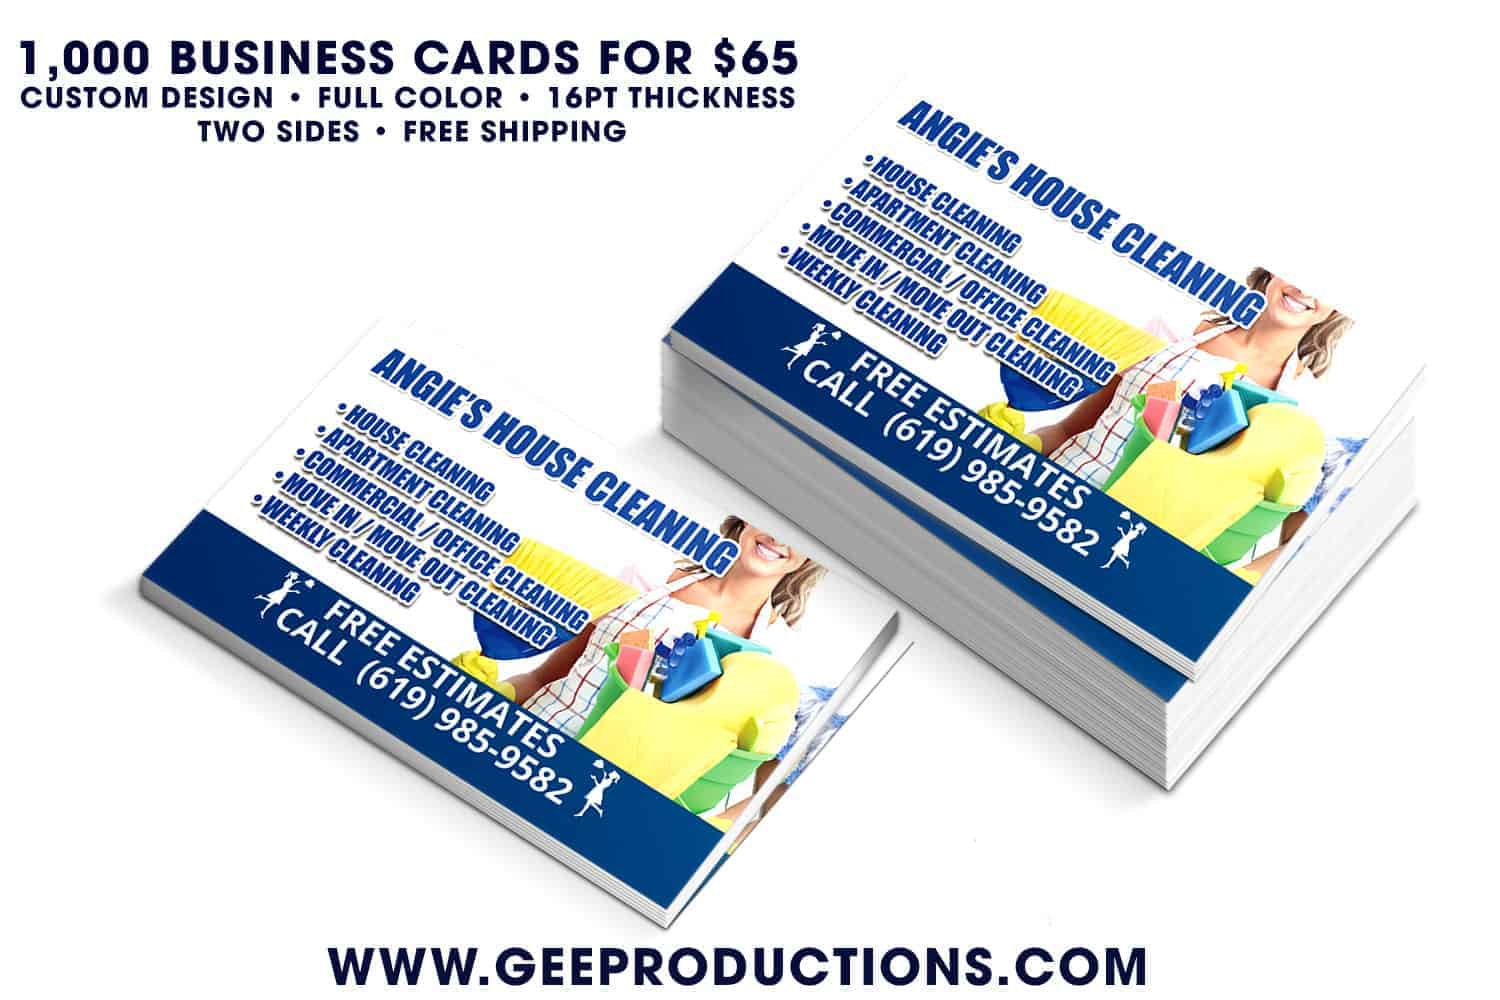 Print - Web Design • Branding • Digital Marketing |Commercial Cleaning Cards